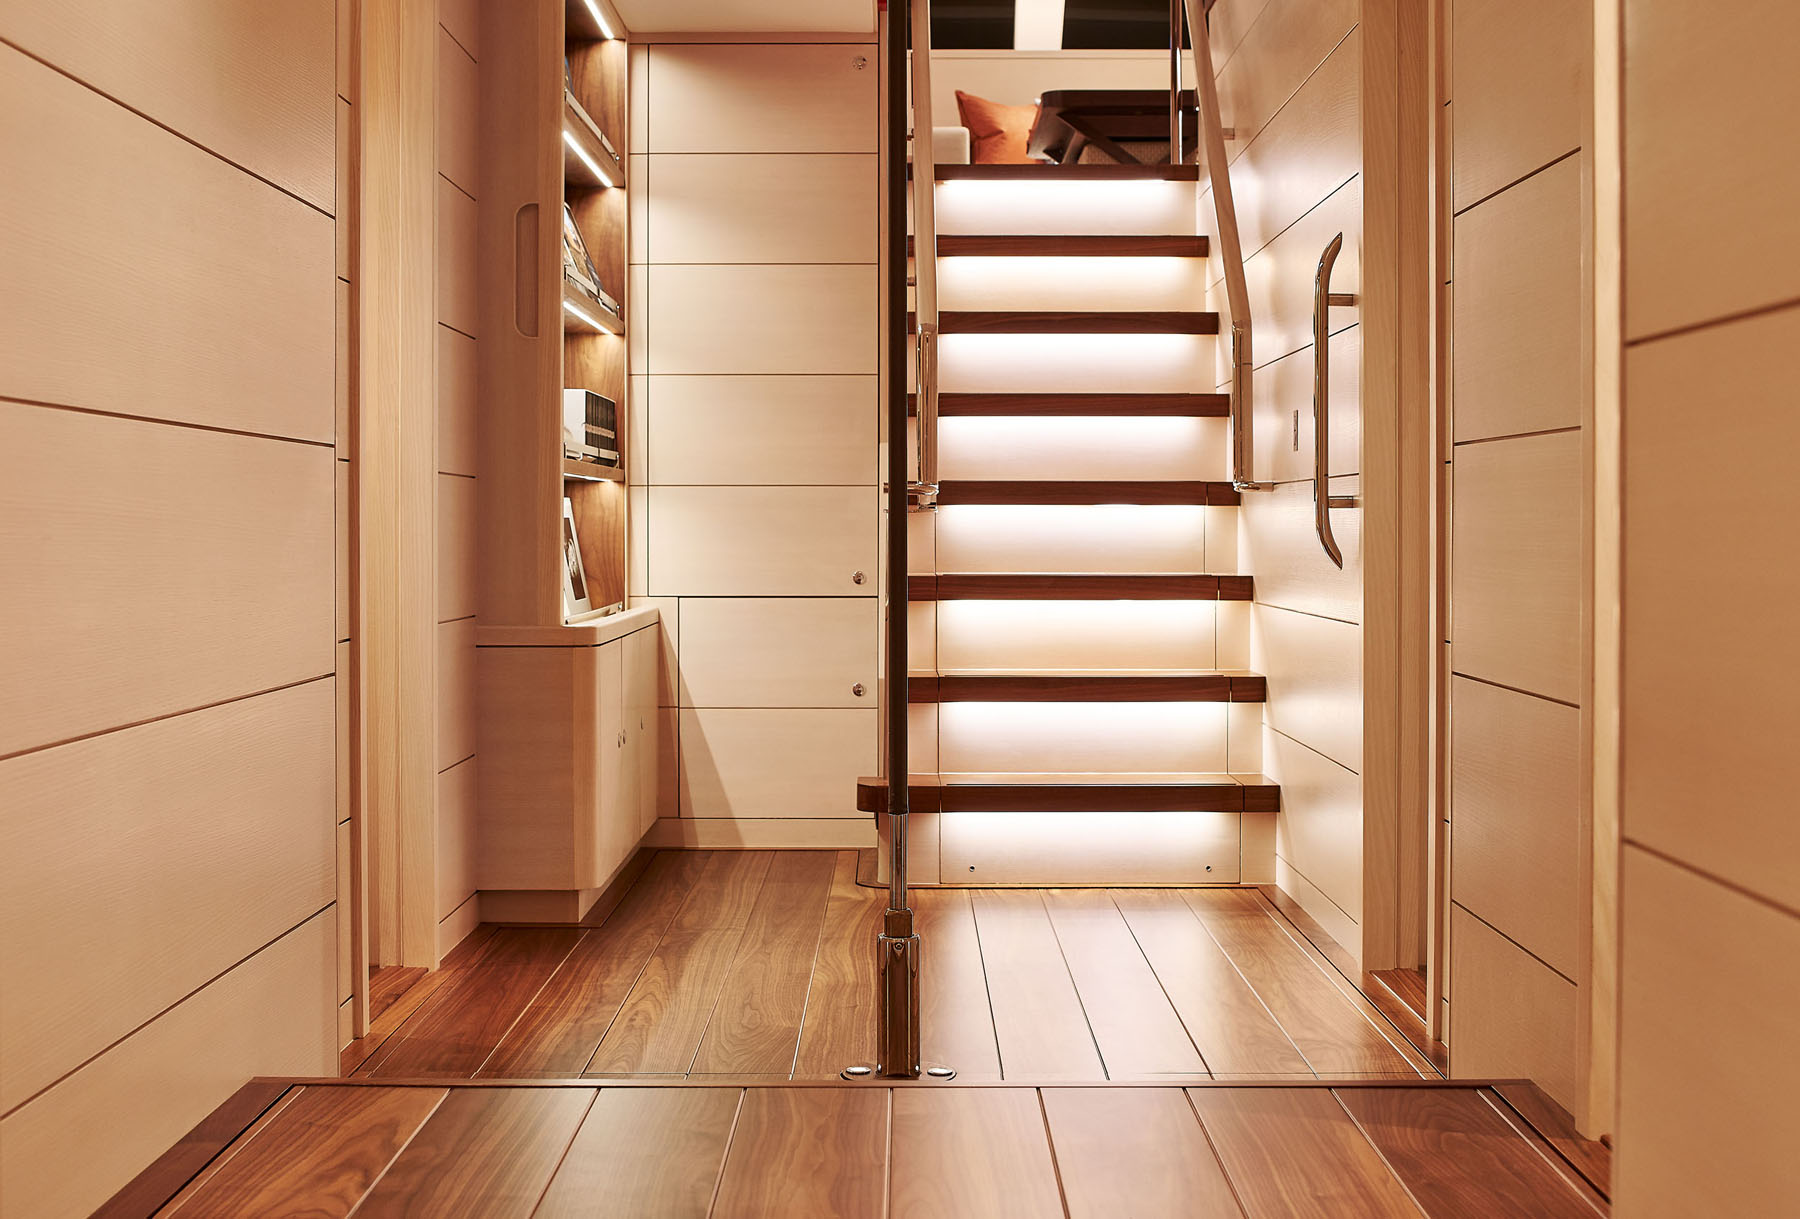 Hallway and under-stair lighting onboard the S/Y Archelon